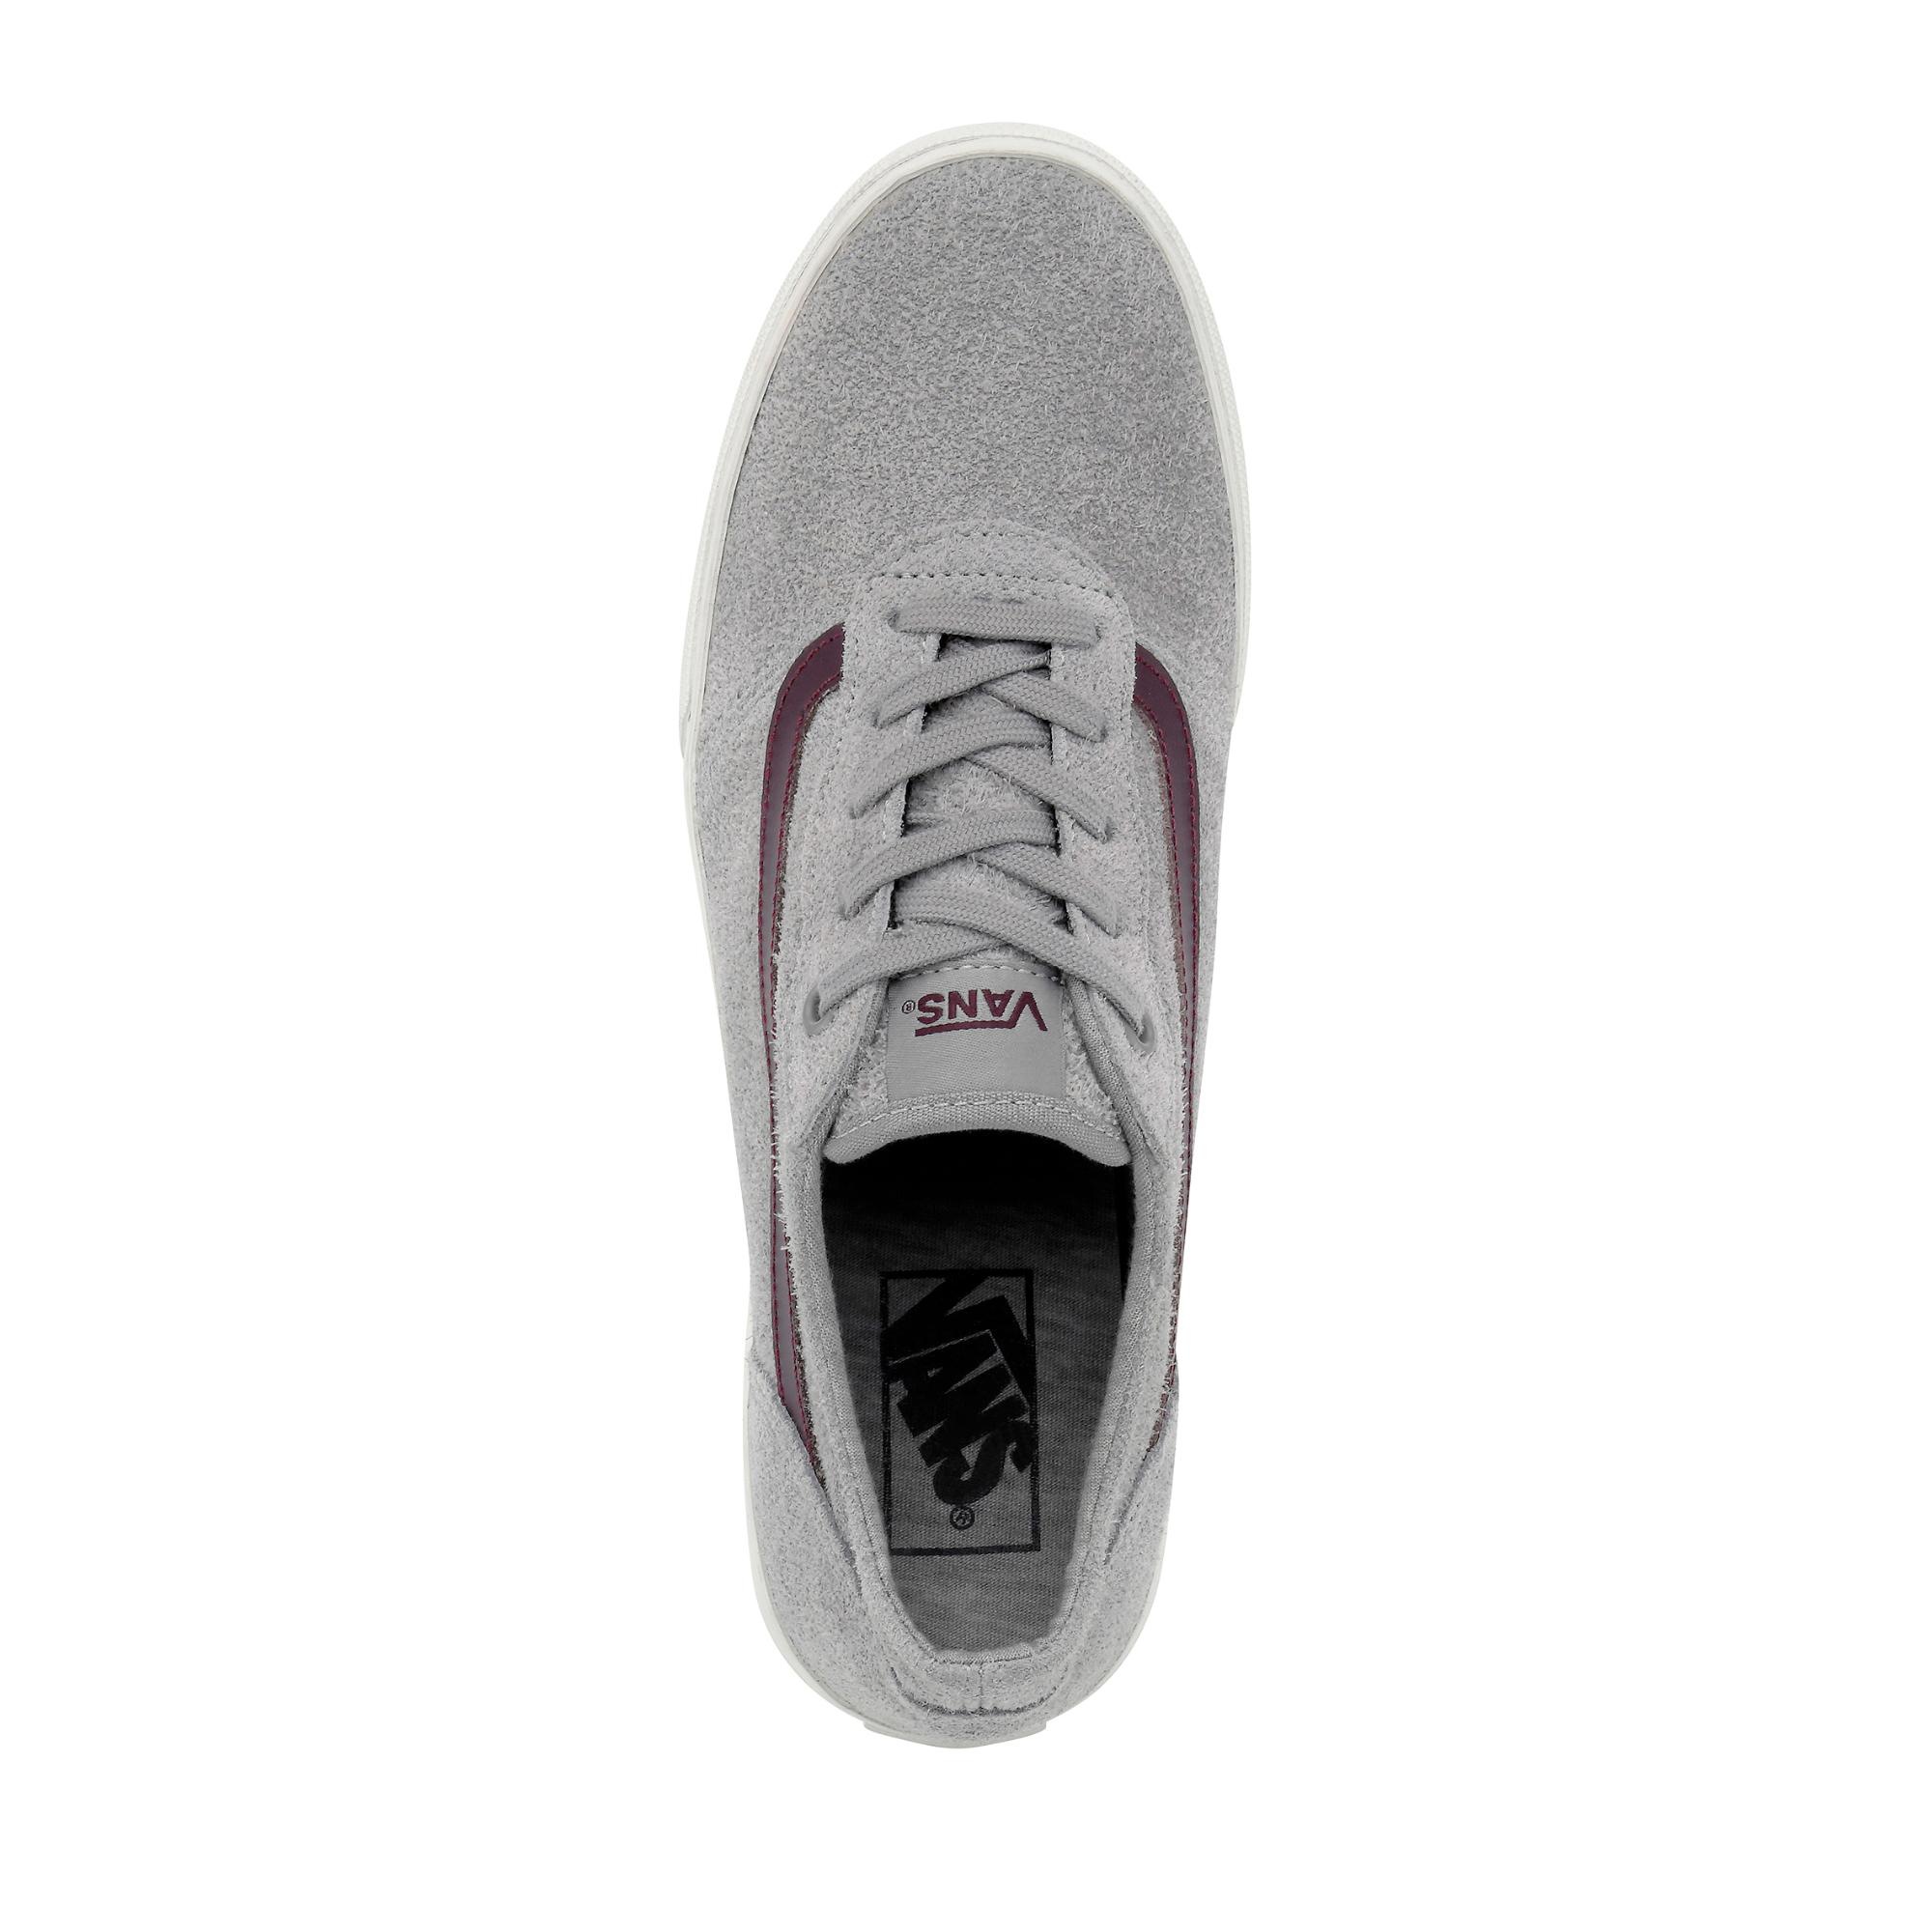 vans maddle grau